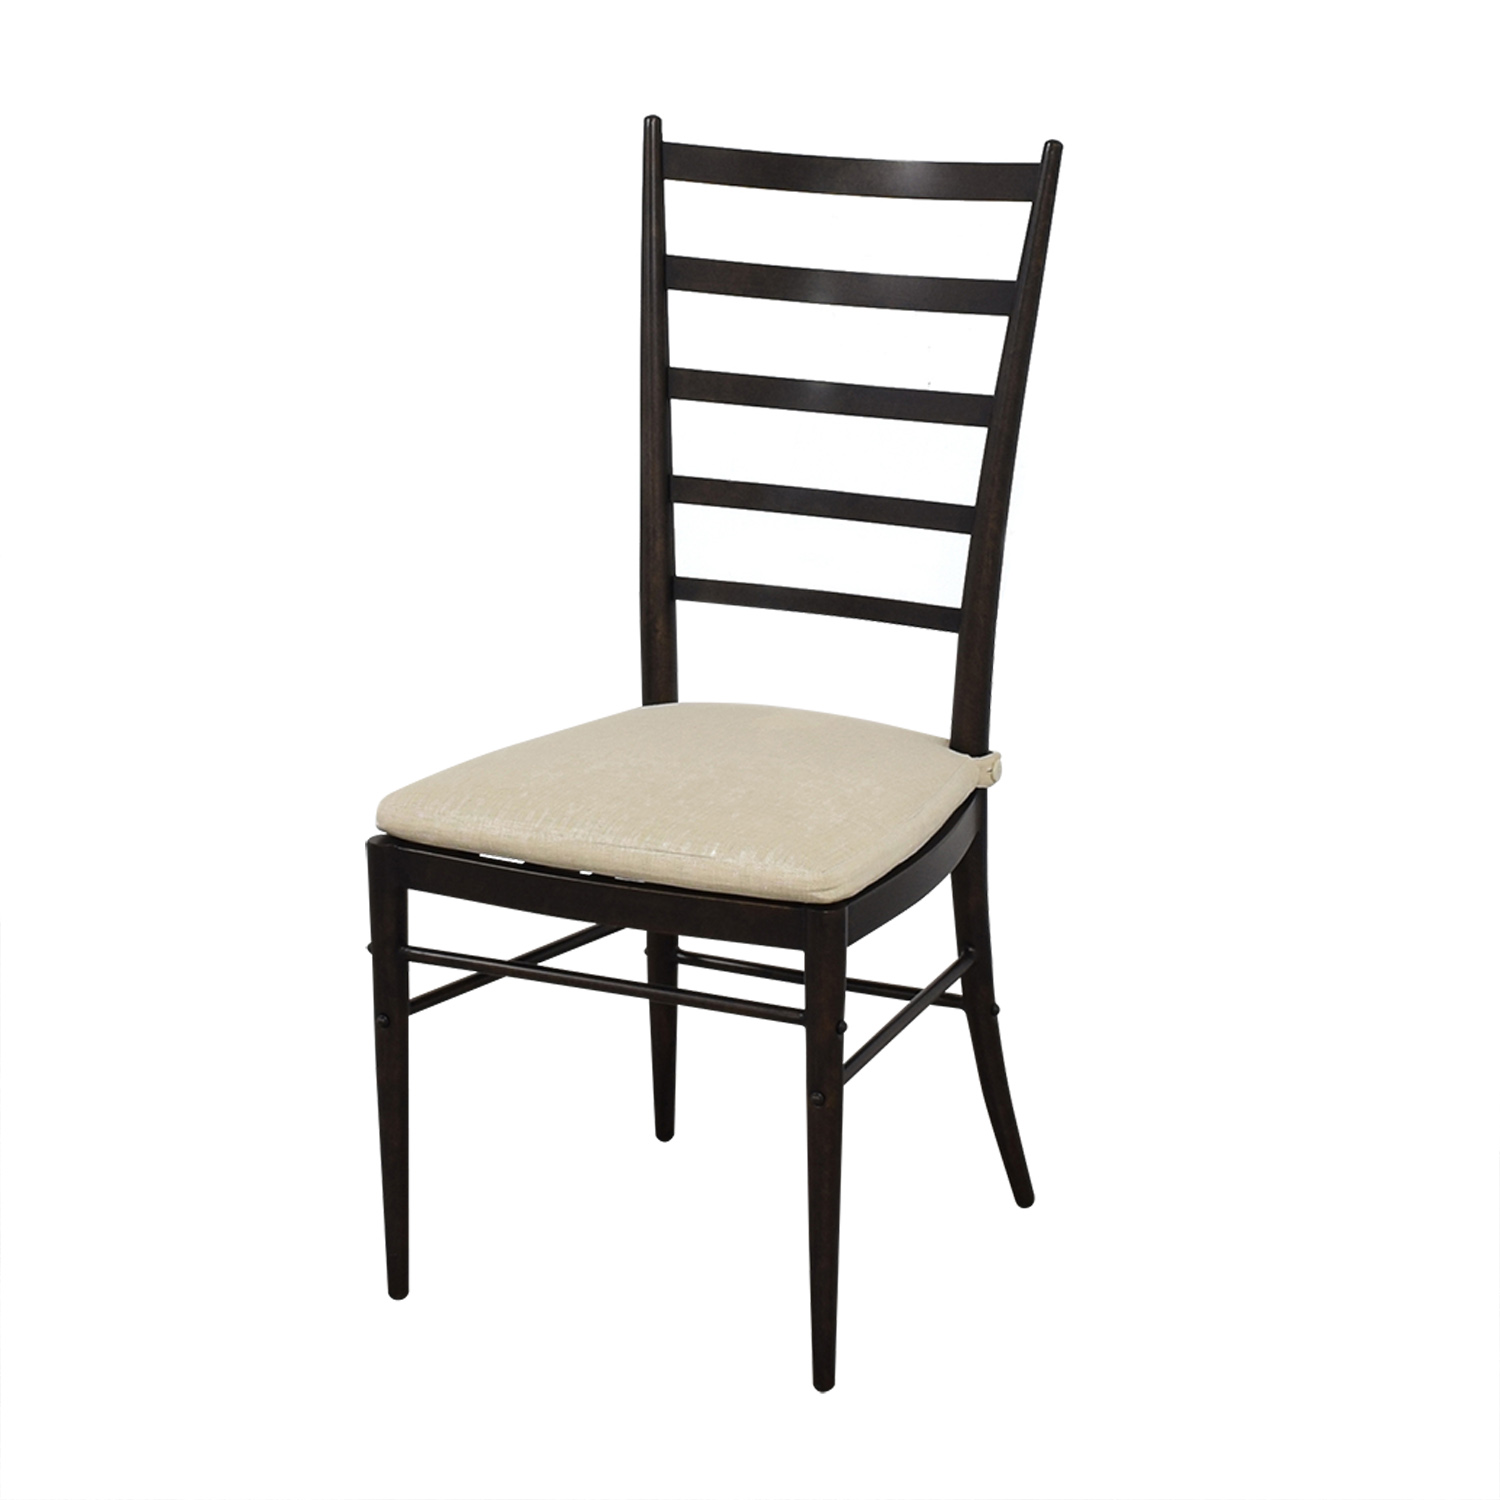 Crate & Barrel Ladder Back Dining Chairs / Dining Chairs